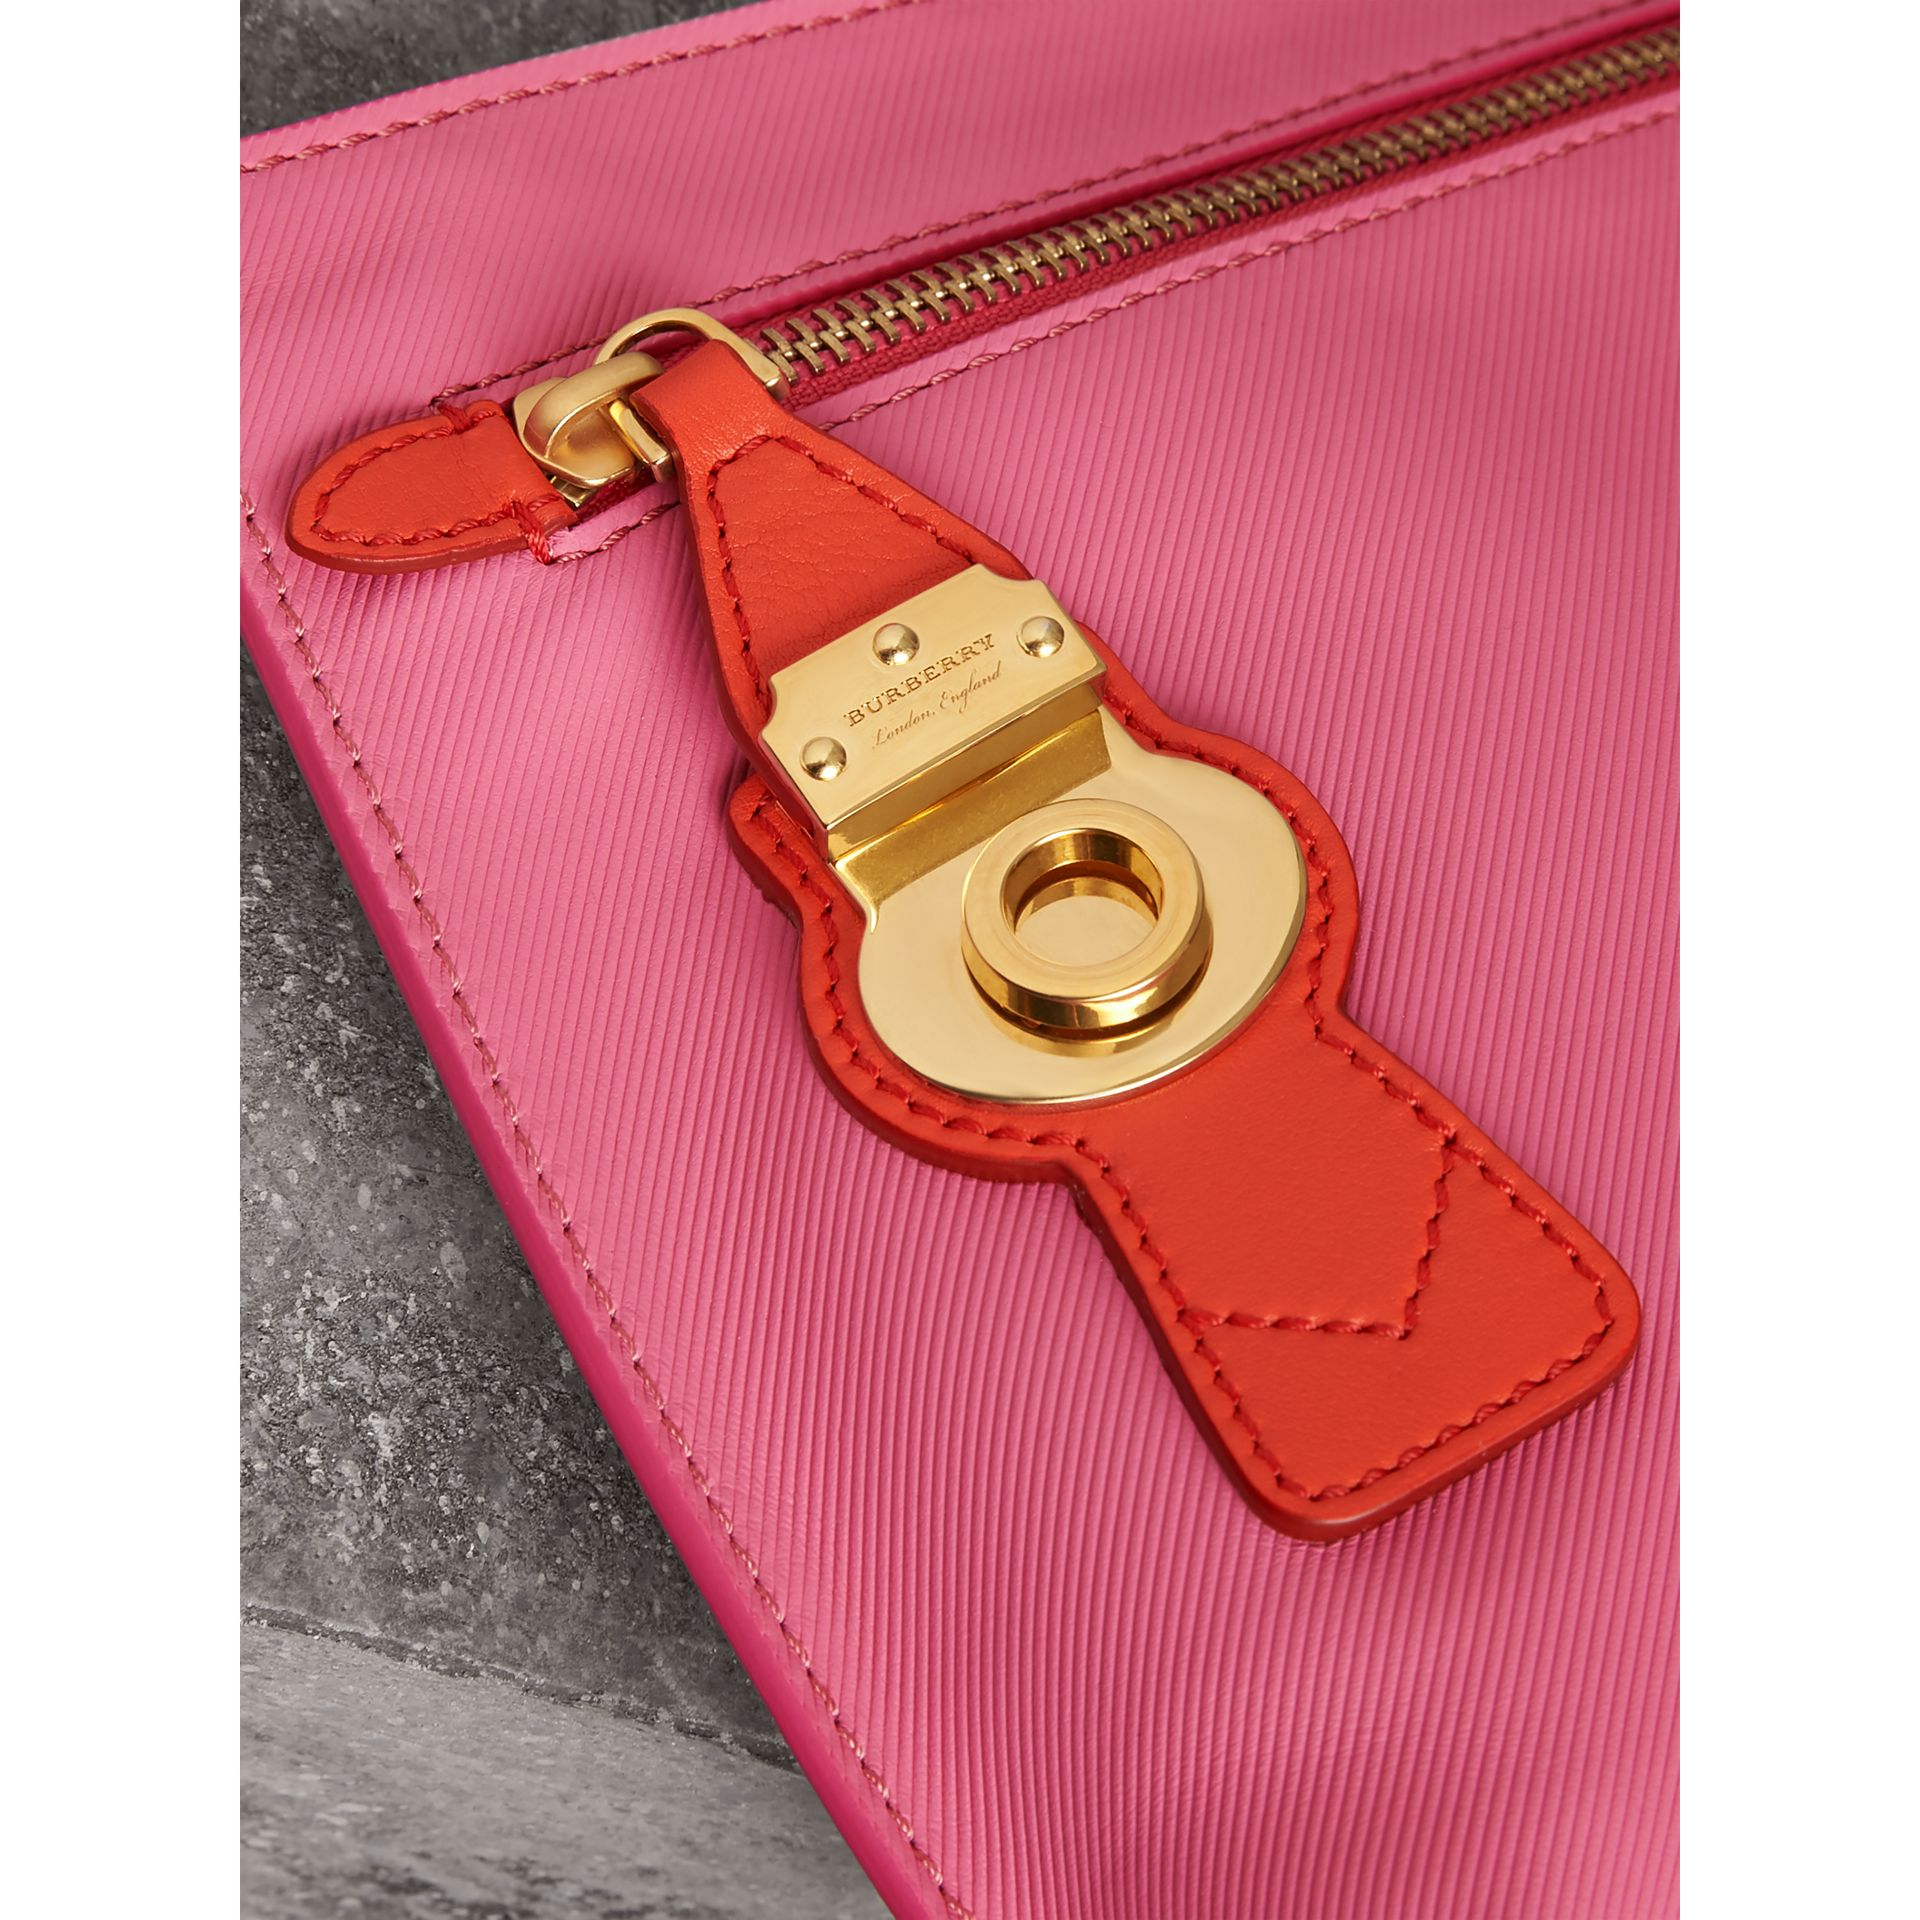 Two-tone Trench Leather Wristlet Pouch in Rose Pink - Women | Burberry - gallery image 1